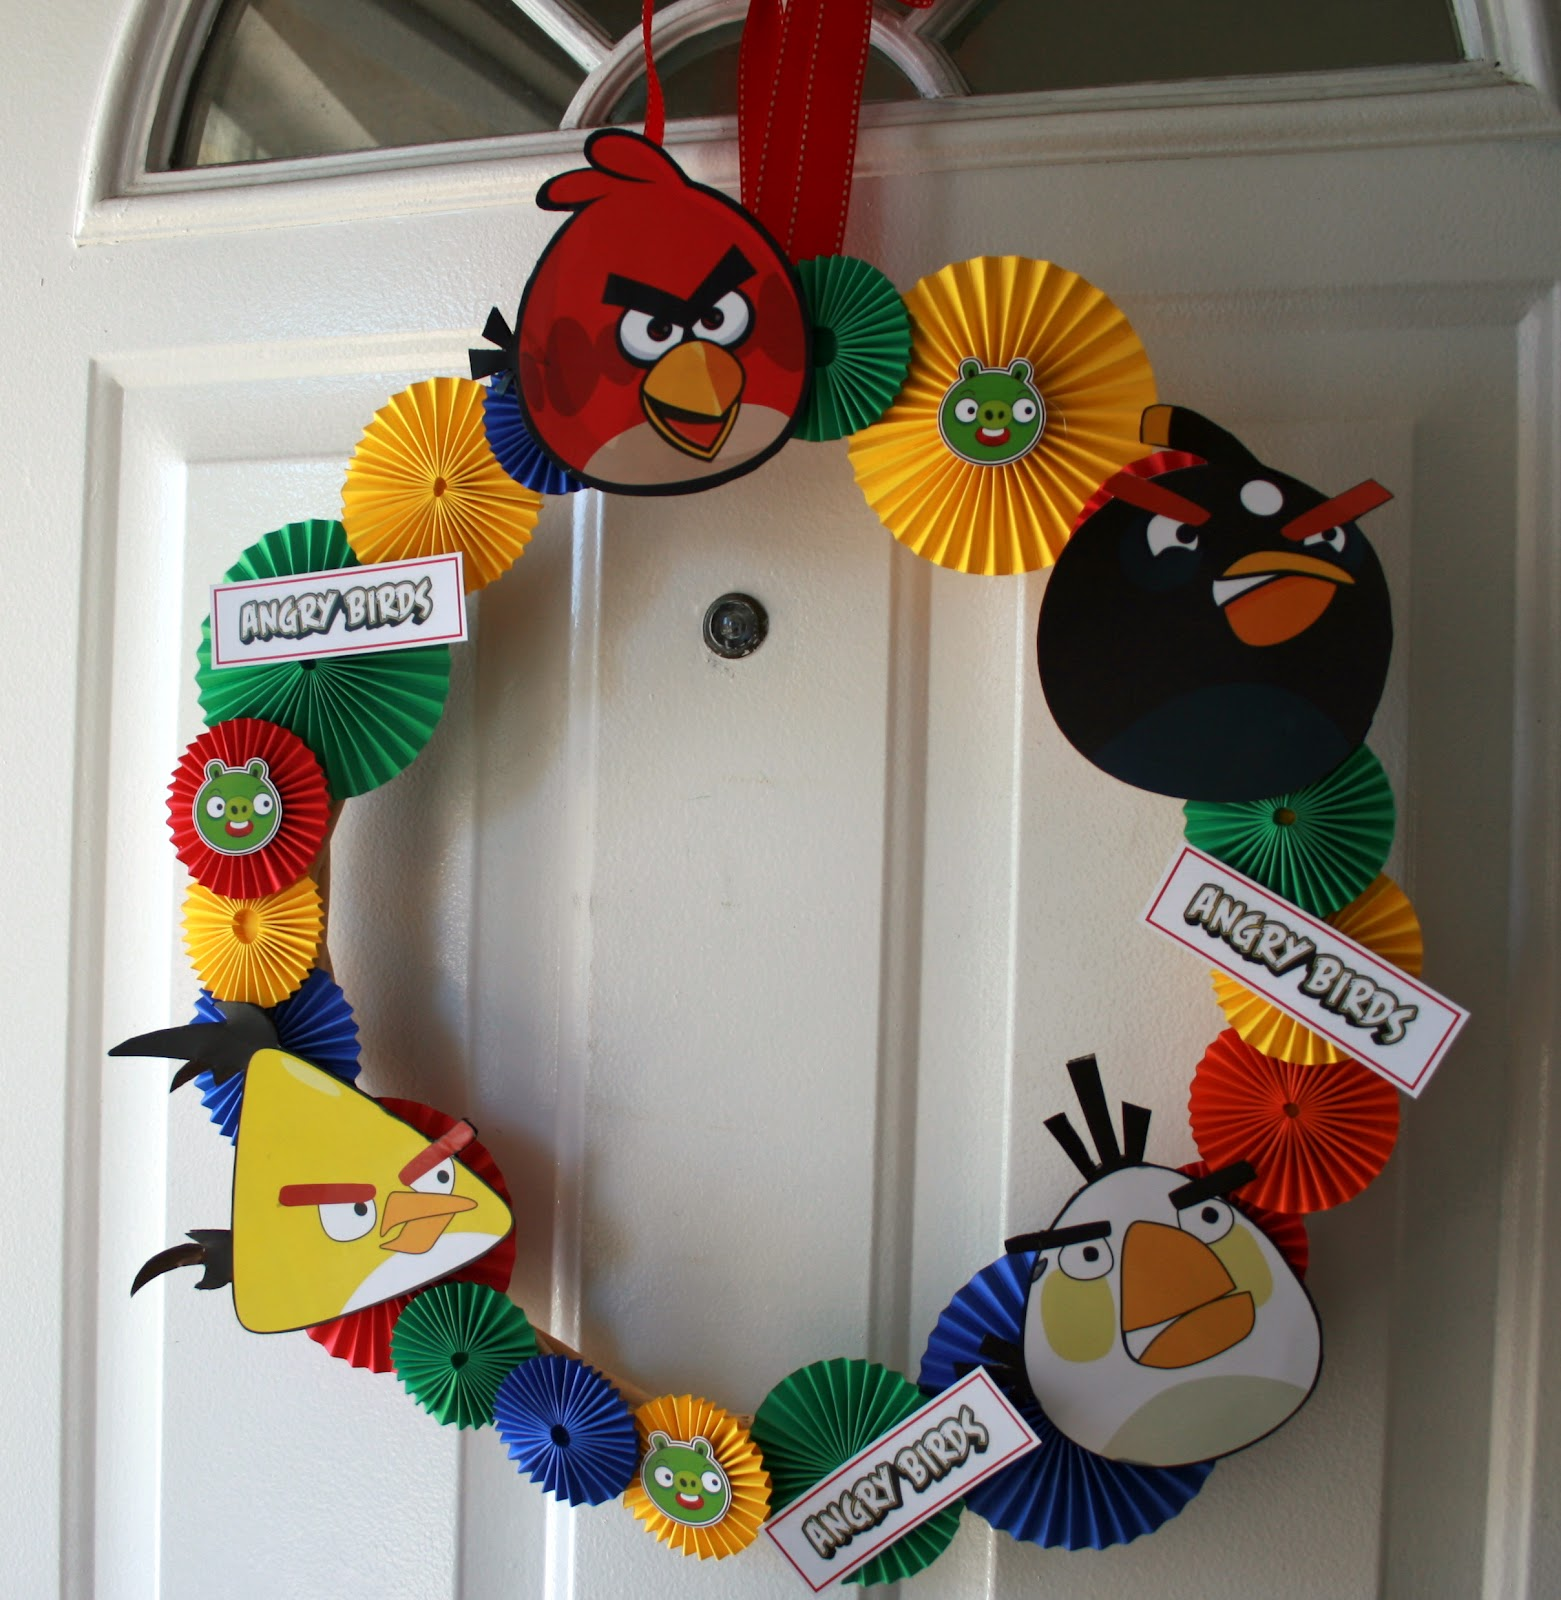 My creative ink angry bird party decorations for Angry birds party decoration ideas